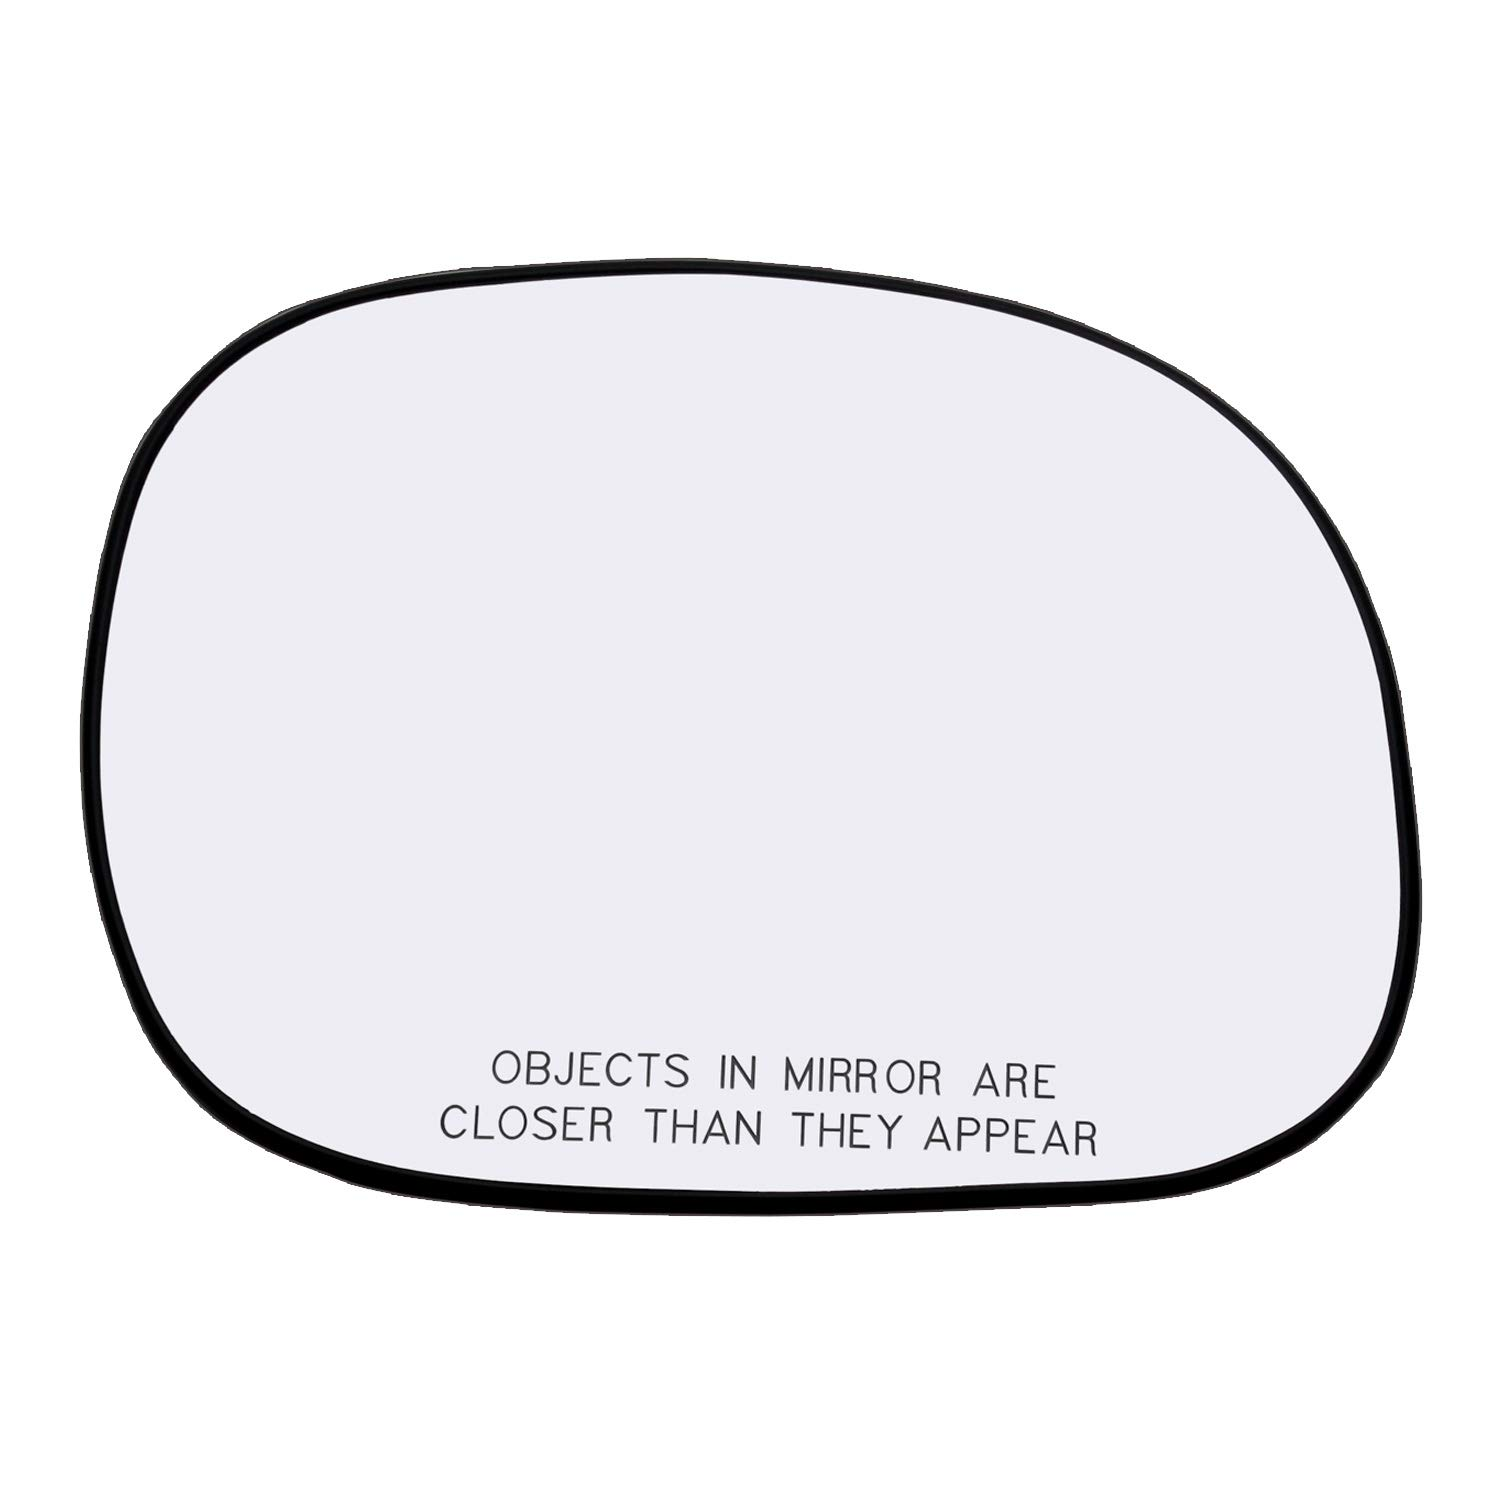 Heritage F-250 F-350 Sold By Rugged TUFF New Replacement Passenger Side Mirror Glass W Backing Compatible With Ford Expedition Ford F-150